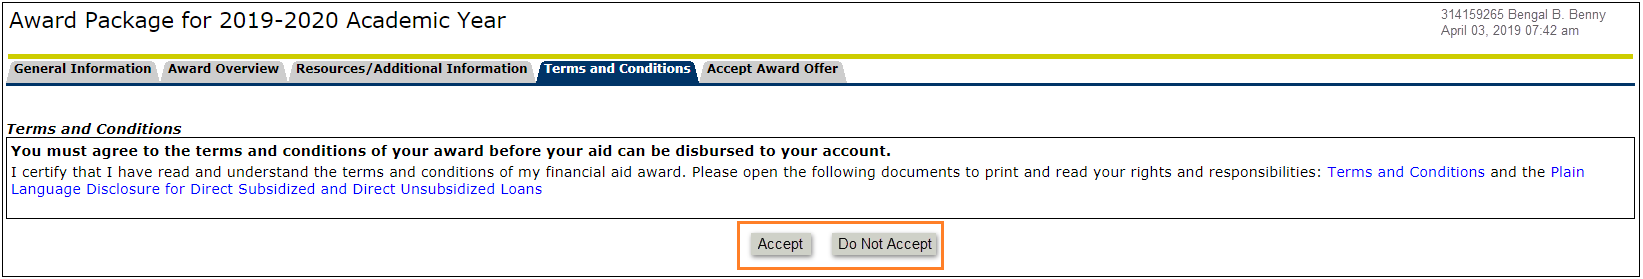 Terms and Conditions Tab highlighting Accept and Do Not Accept